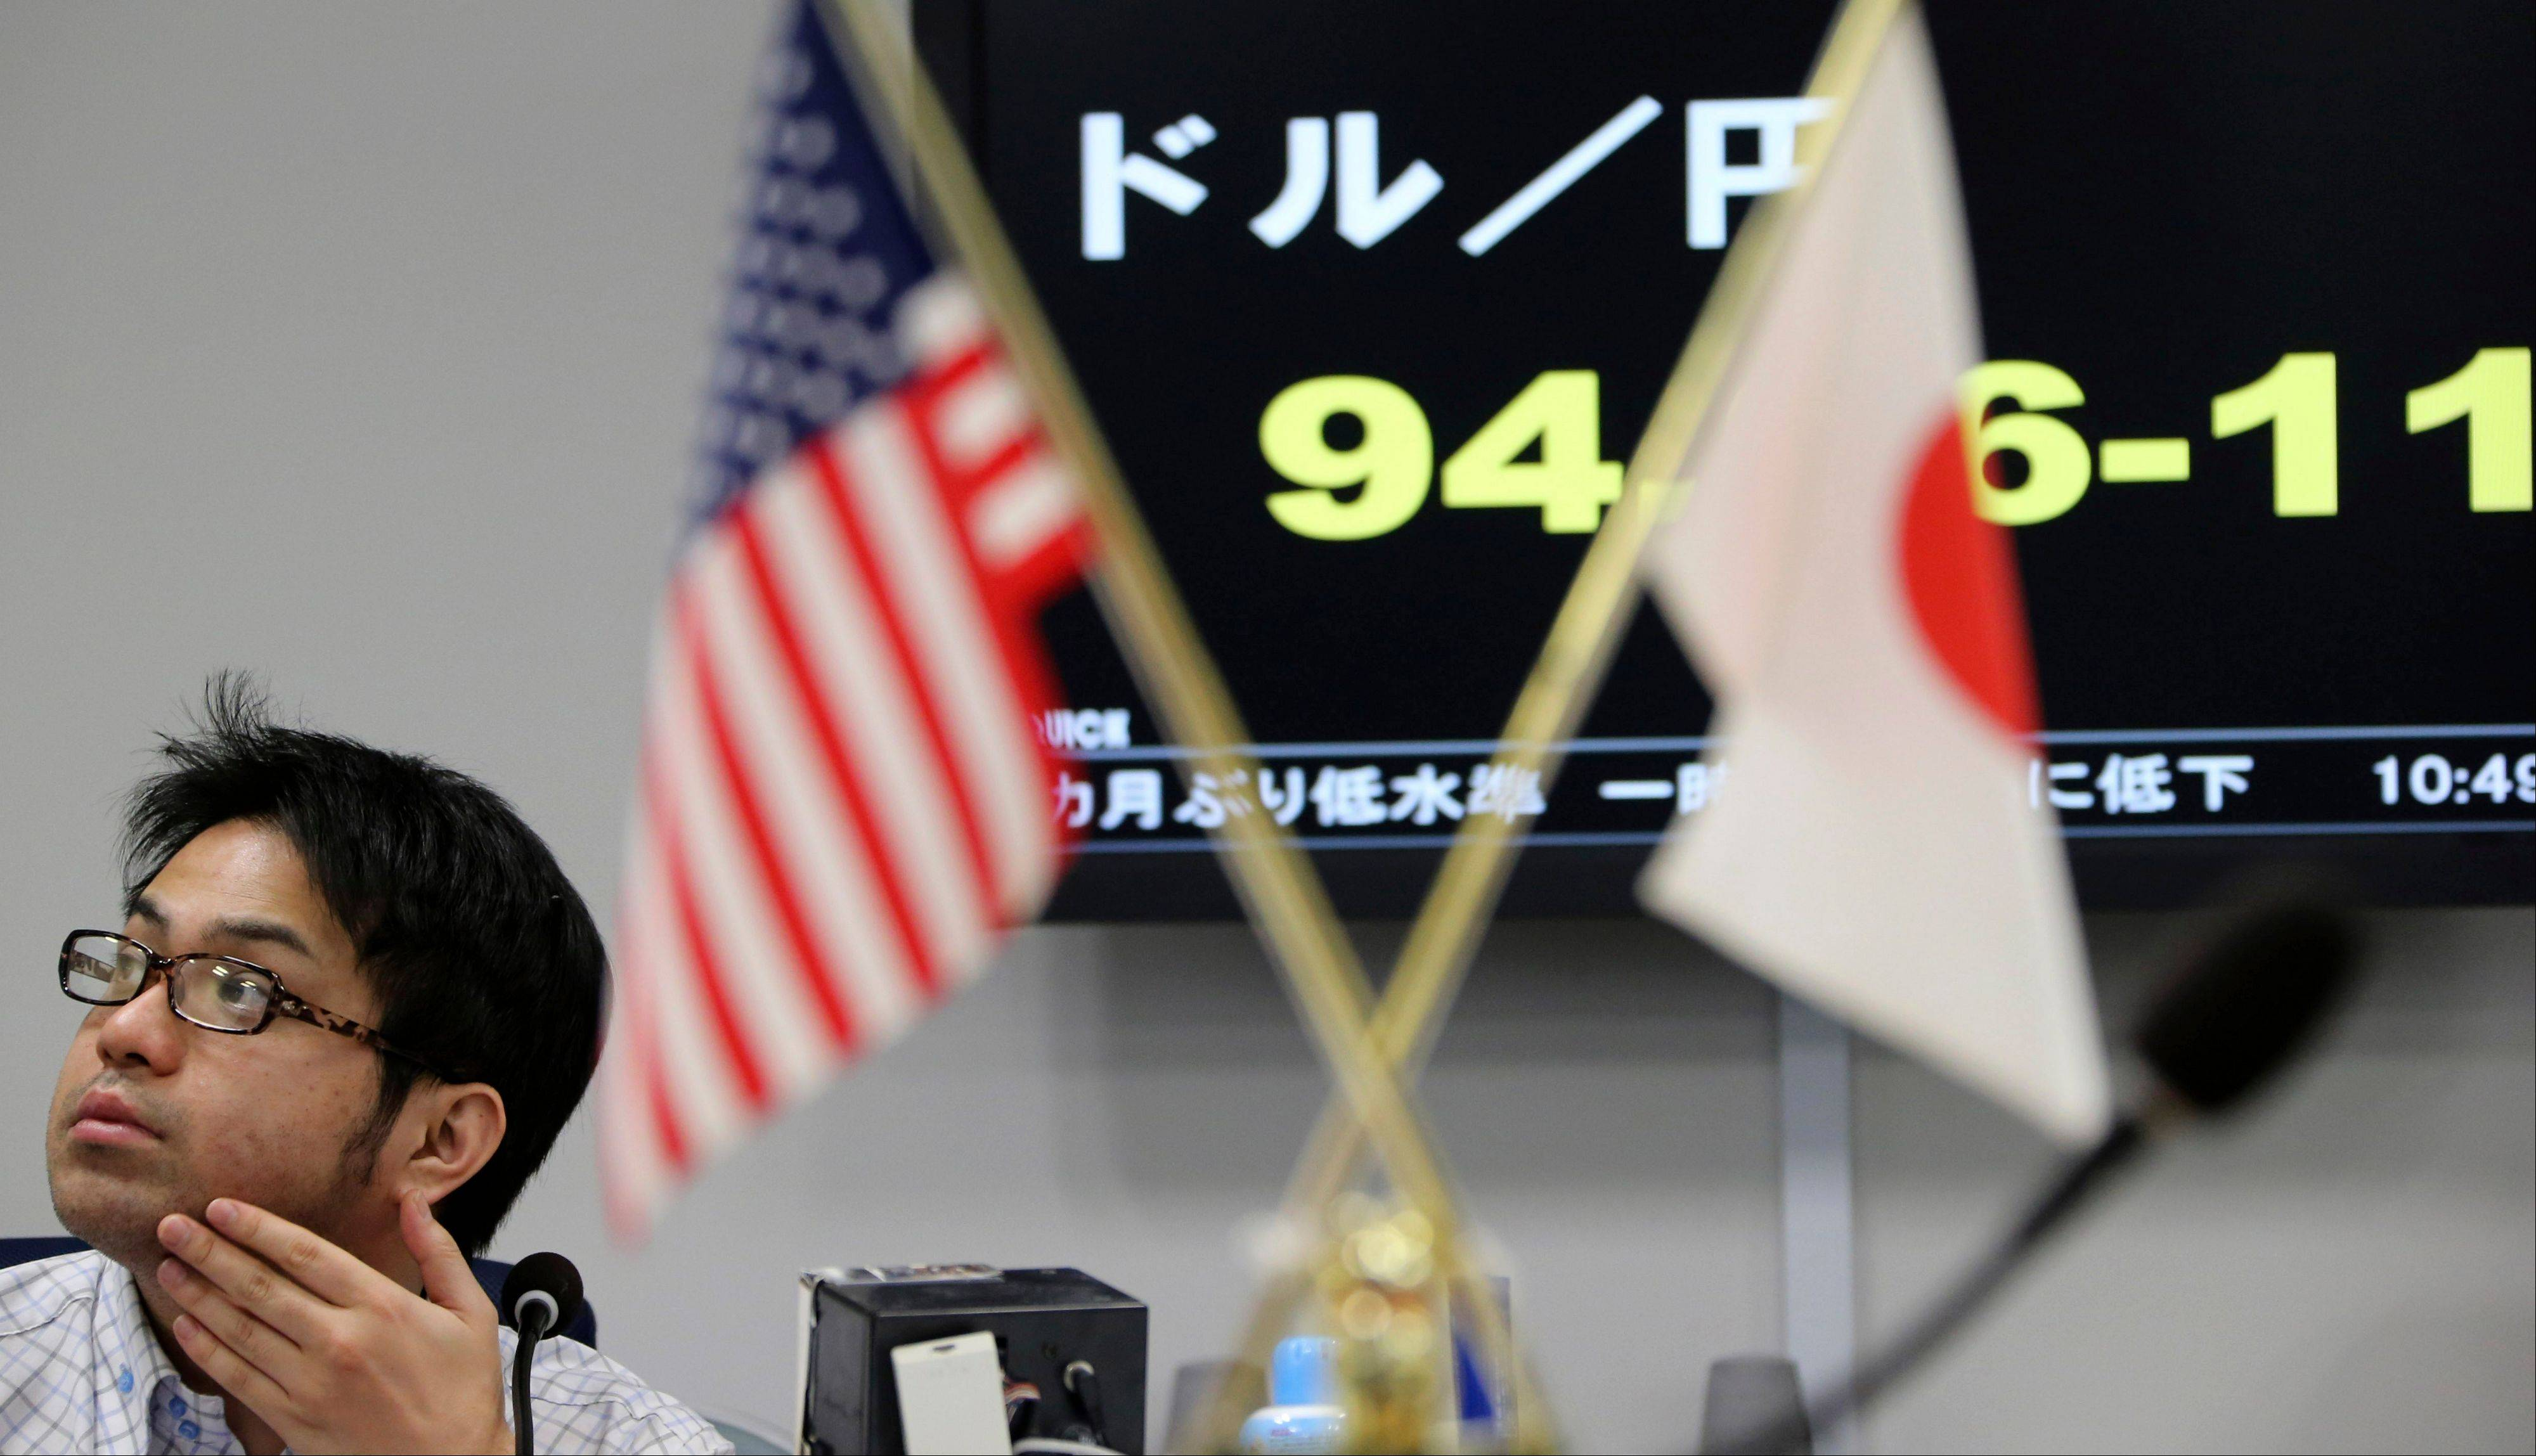 $PHOTOCREDIT_ON$$PHOTOCREDIT_OFF$A foreign exchange broker works in front of a screen displaying the current dollar to yen rate as an American and Japanese, flag are displayed at the office in Tokyo, Monday